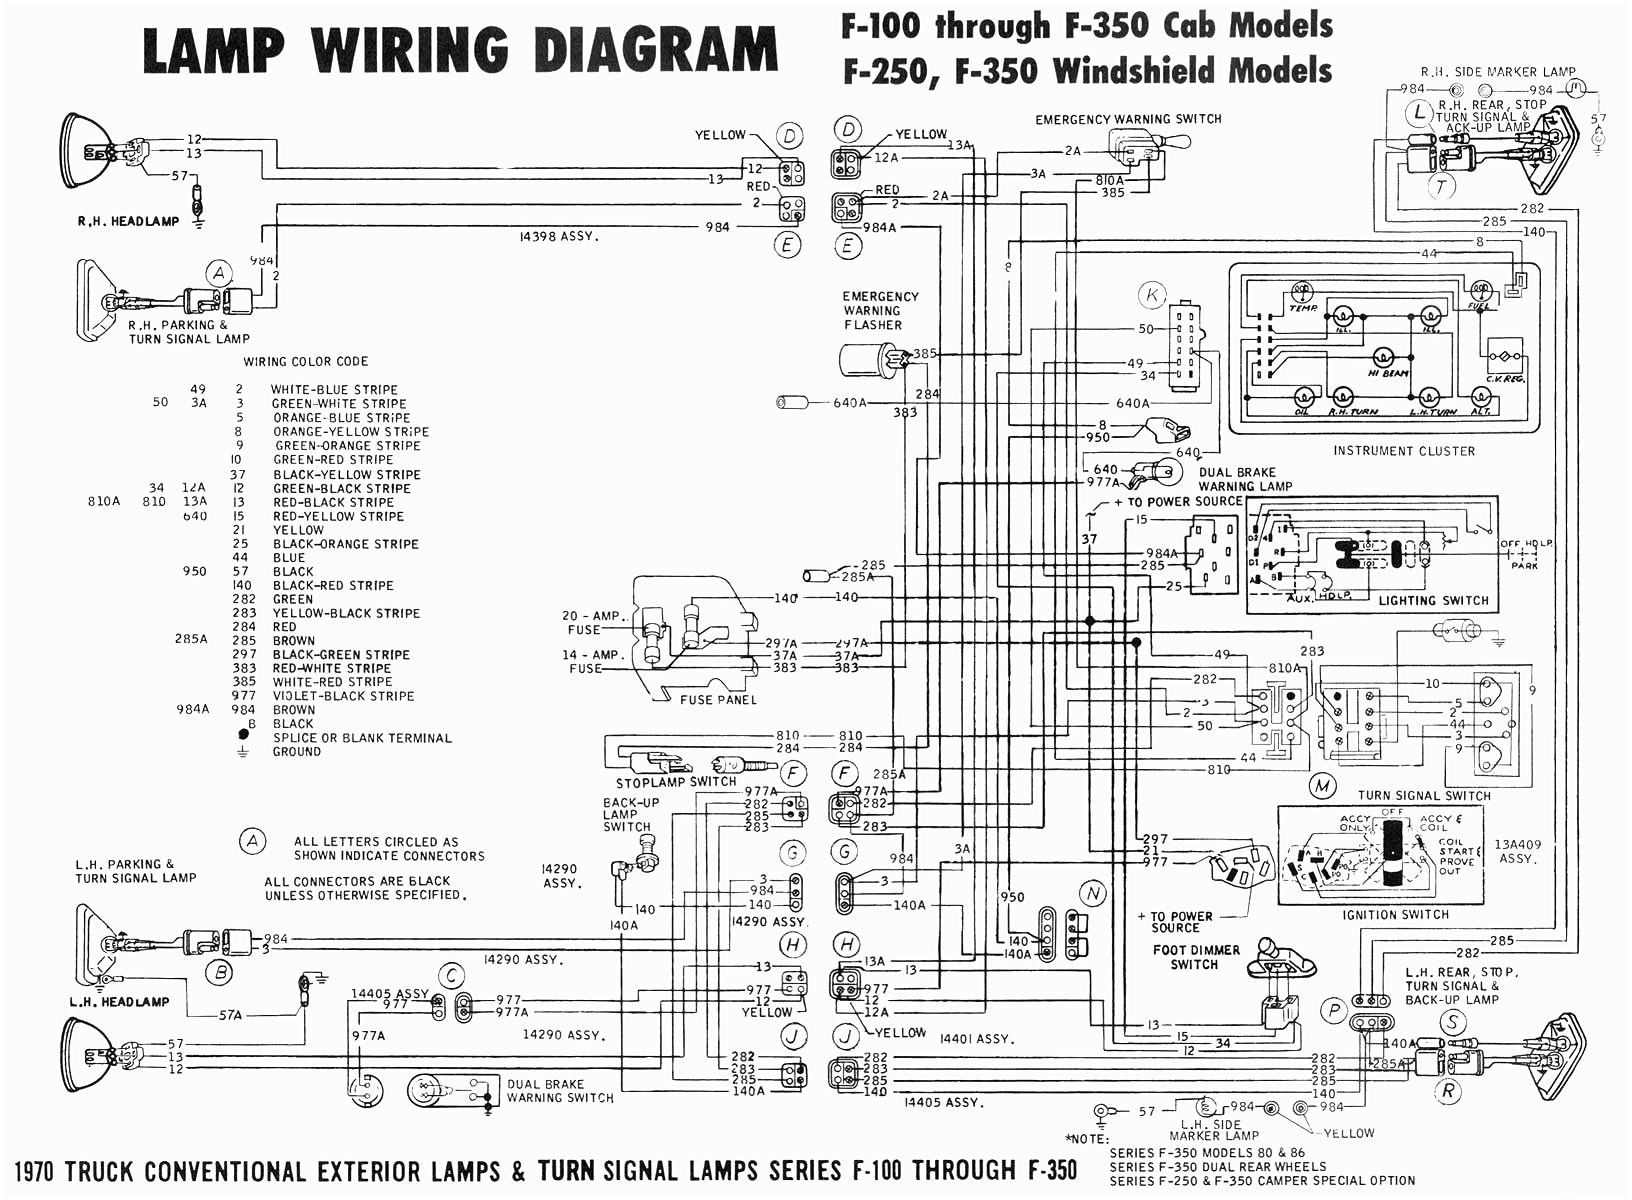 haulz all powered cart wiring diagrams circuit diagram wiring diagram 20110406214407a1jpgviews12430size560 kbid15144